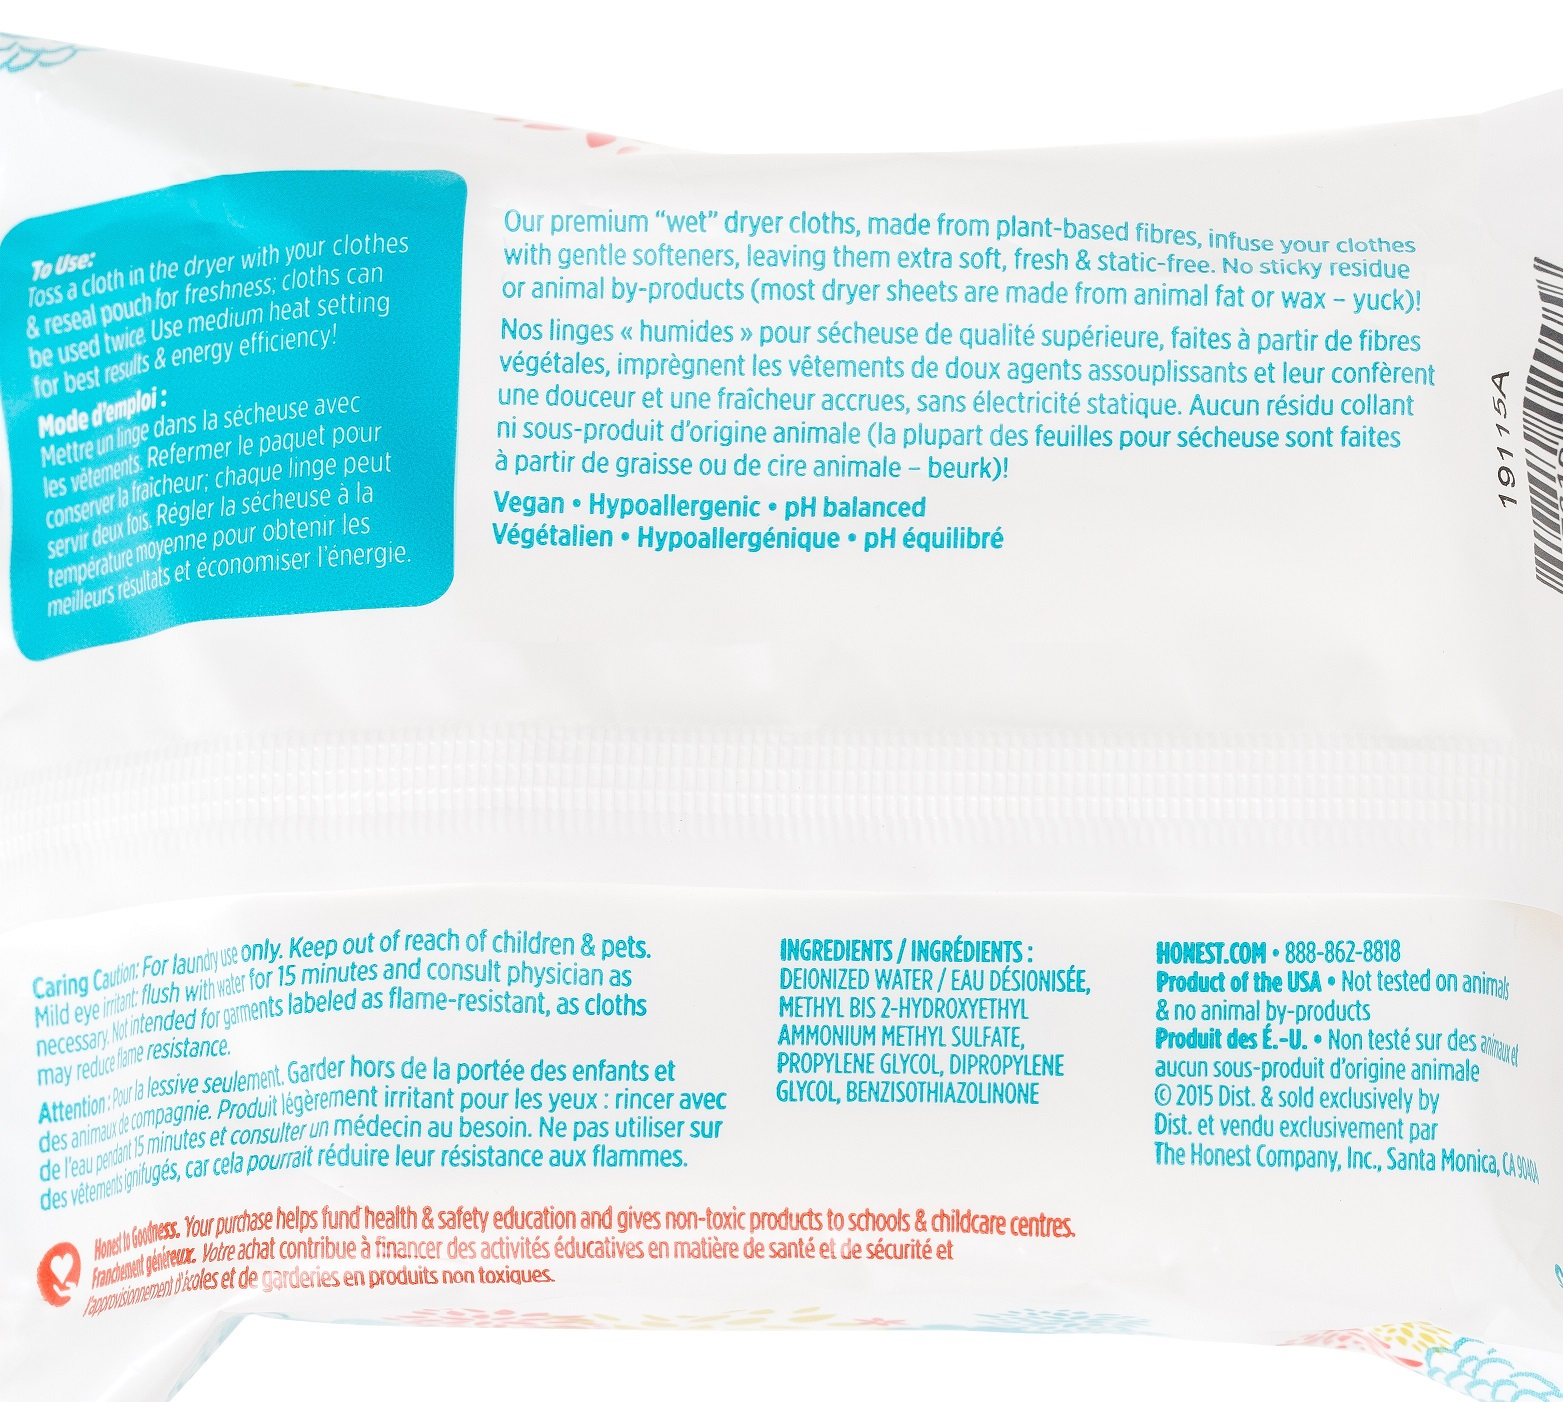 Buy The Honest Company Honest Dryer Cloths At Well Ca